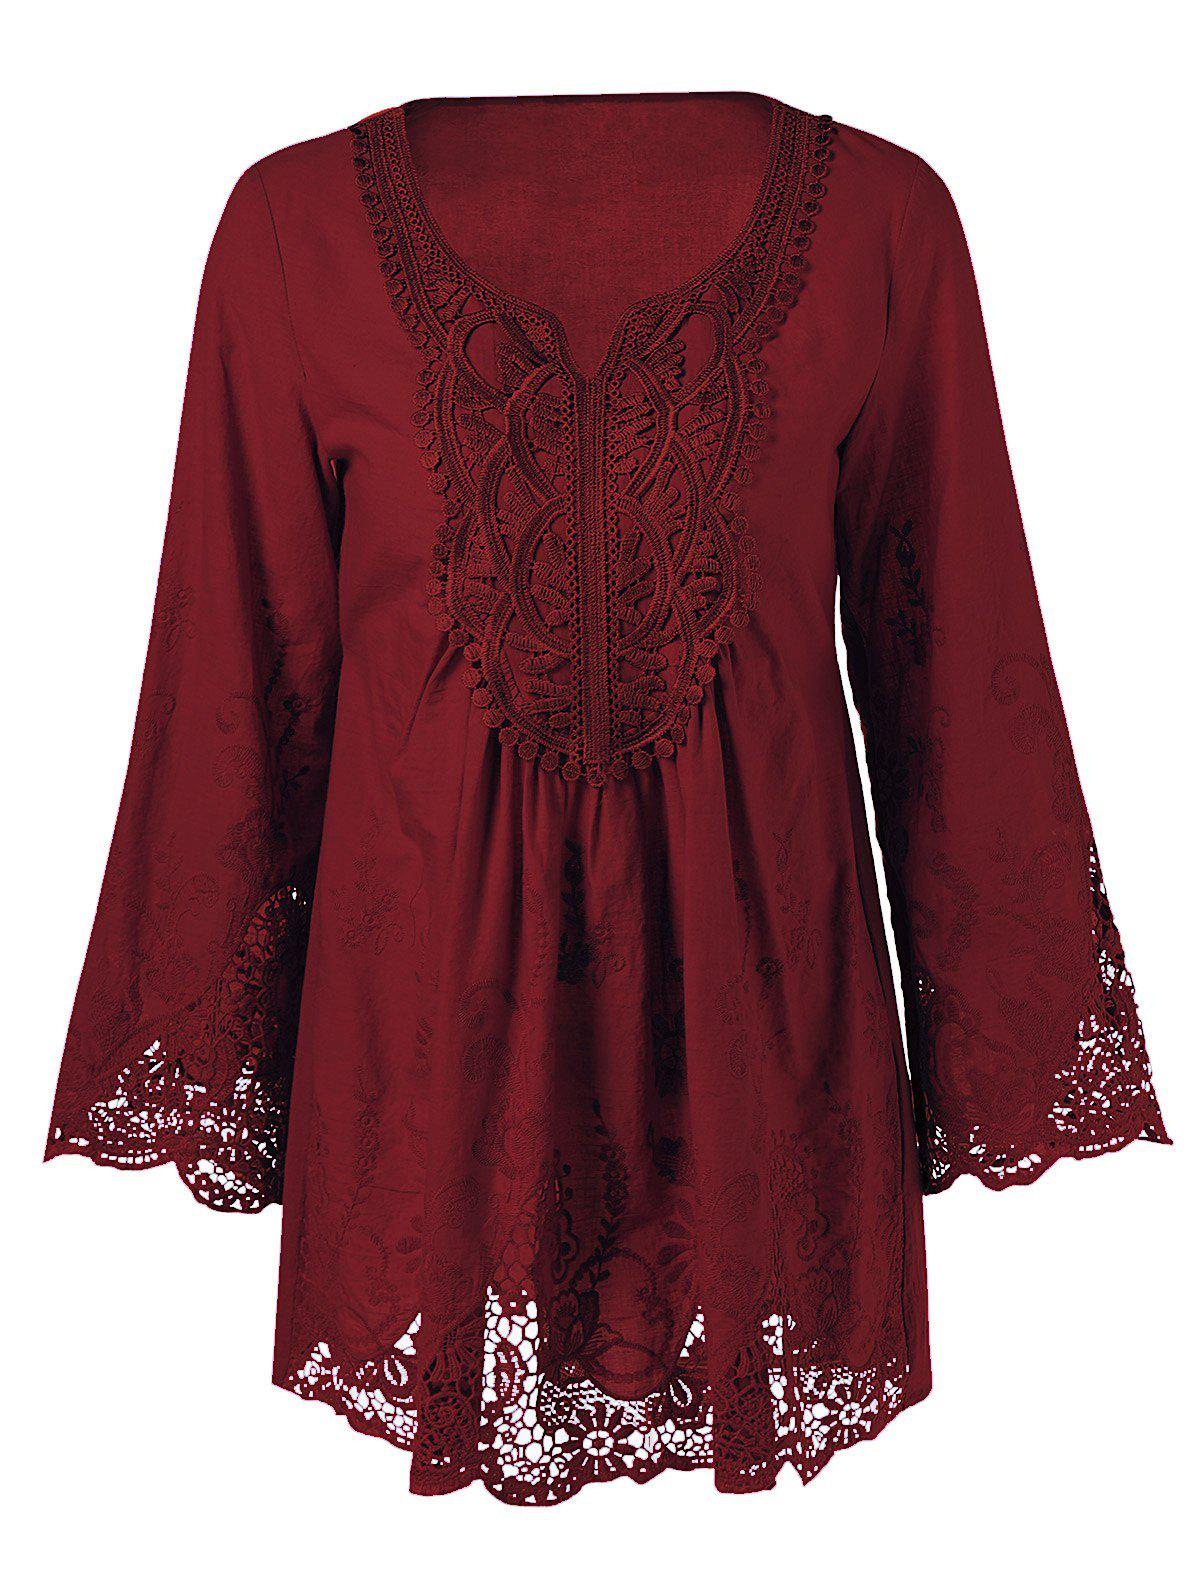 Lace Patchwork Peasant TopWOMEN<br><br>Size: 2XL; Color: WINE RED; Style: Casual; Material: Cotton Blends,Polyester; Shirt Length: Long; Sleeve Length: Full; Collar: Scoop Neck; Pattern Type: Floral; Season: Fall,Spring,Summer; Weight: 0.1930kg; Package Contents: 1 x Blouse;